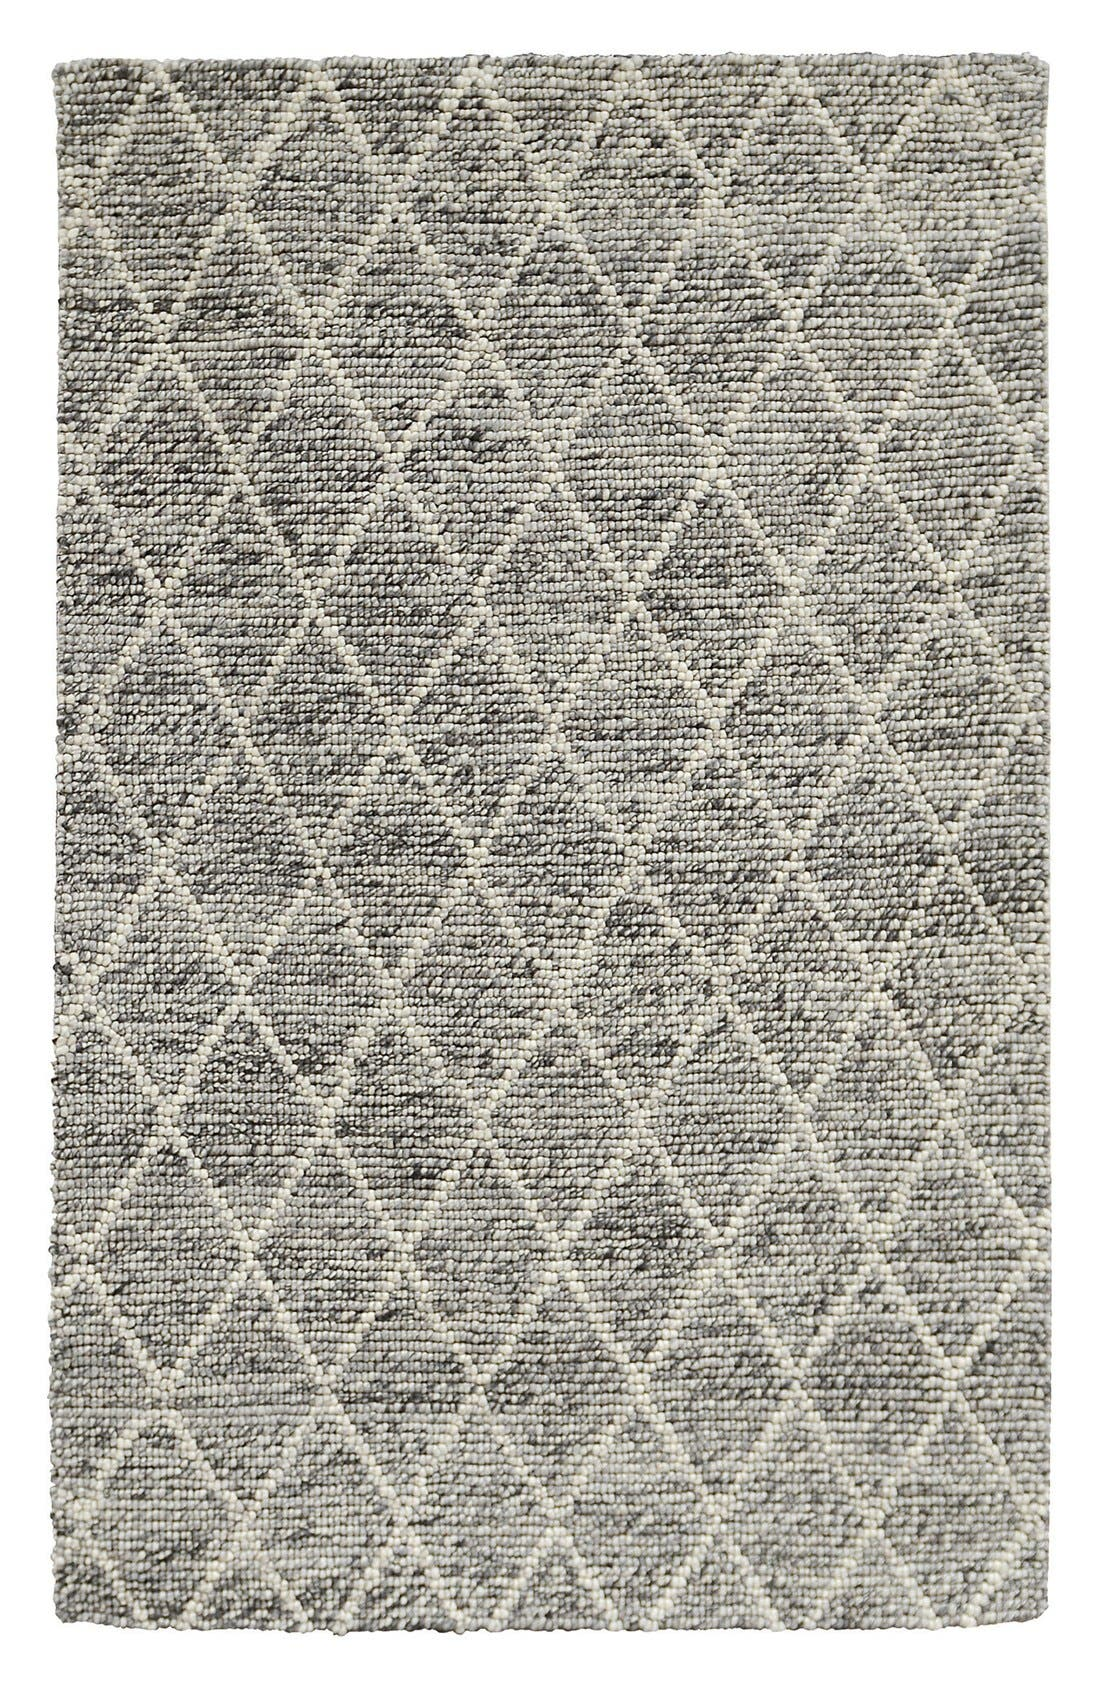 Hand Tufted Wool Rug,                         Main,                         color, 020